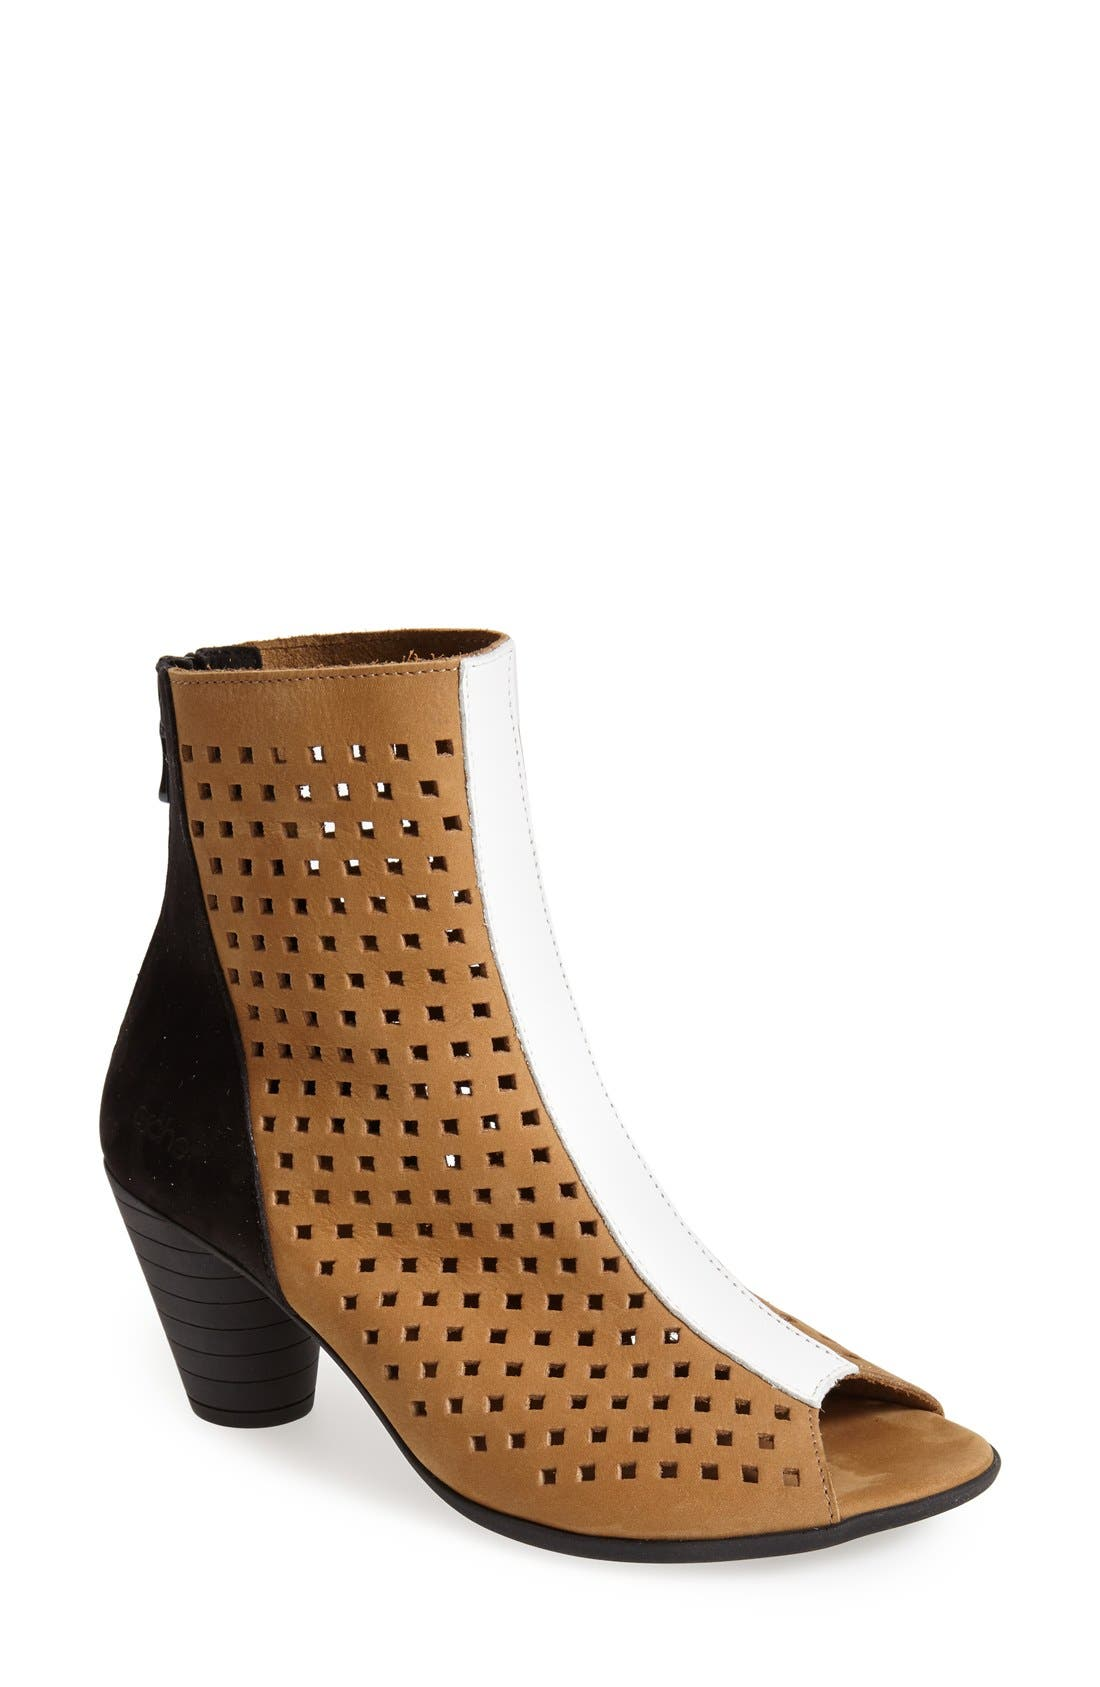 Main Image - Arche 'Fuega' Water Resistant Suede & Leather Boot (Women)